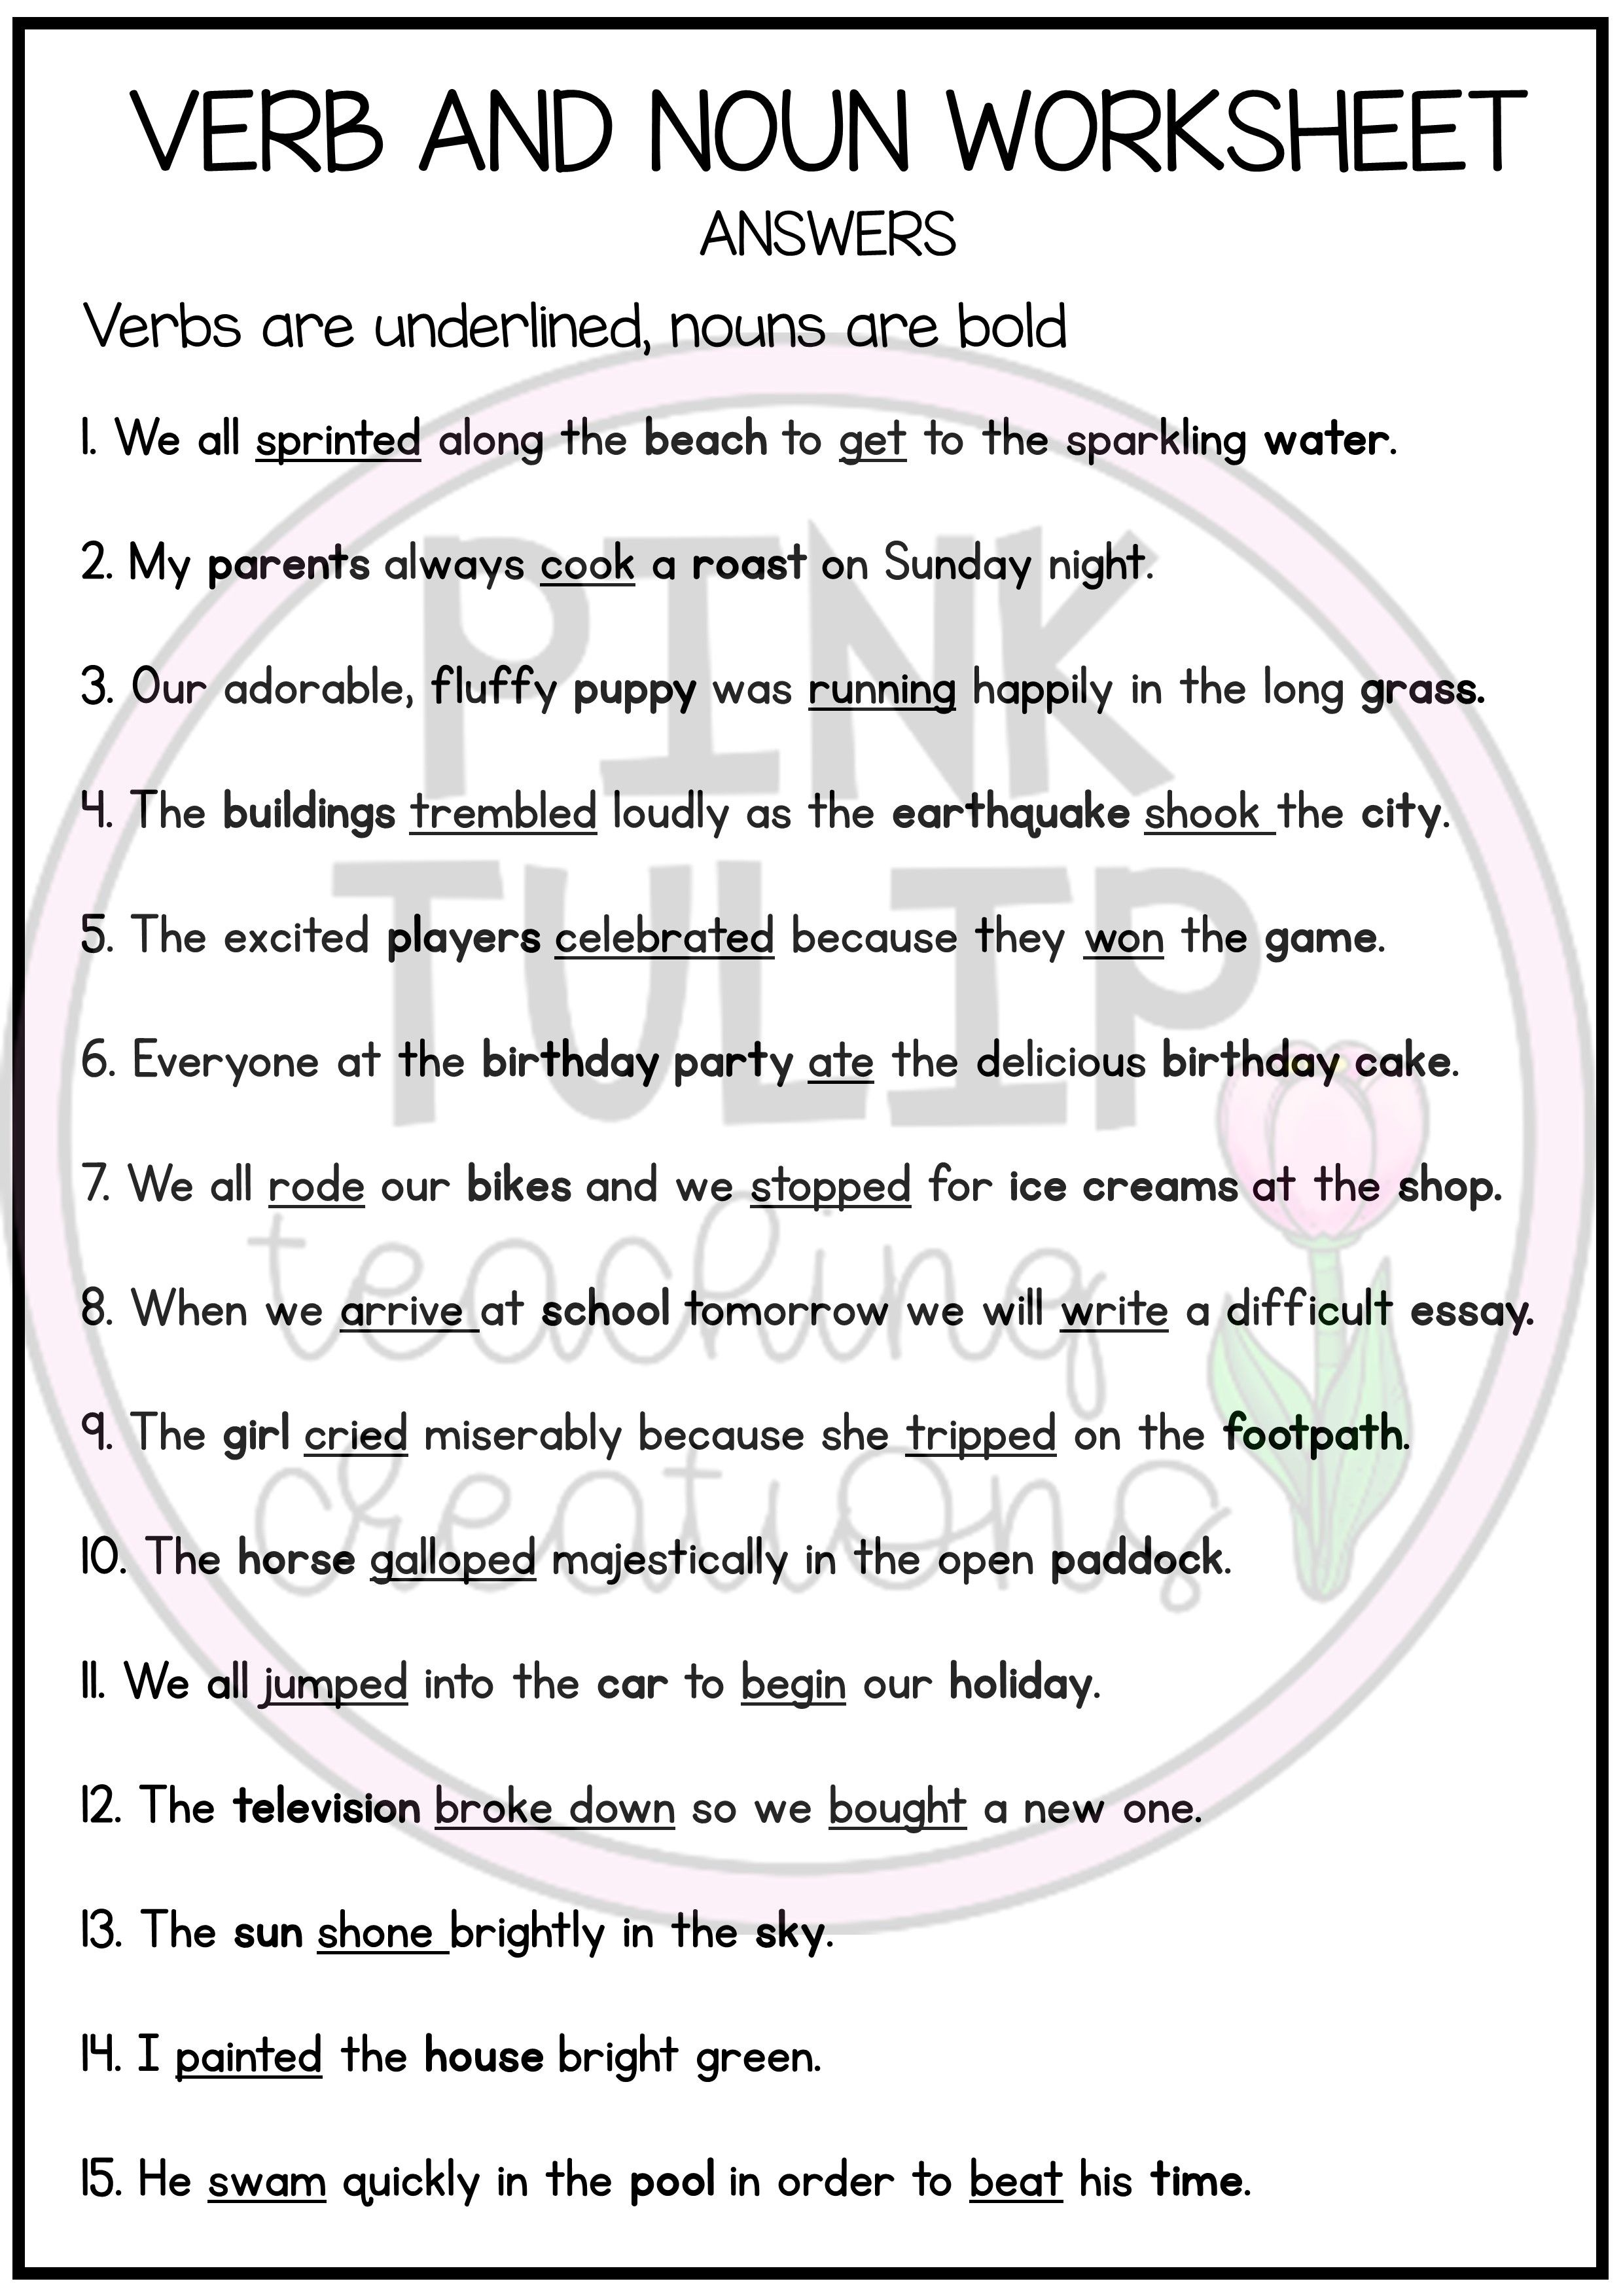 Label The Verbs And Nouns Worksheet